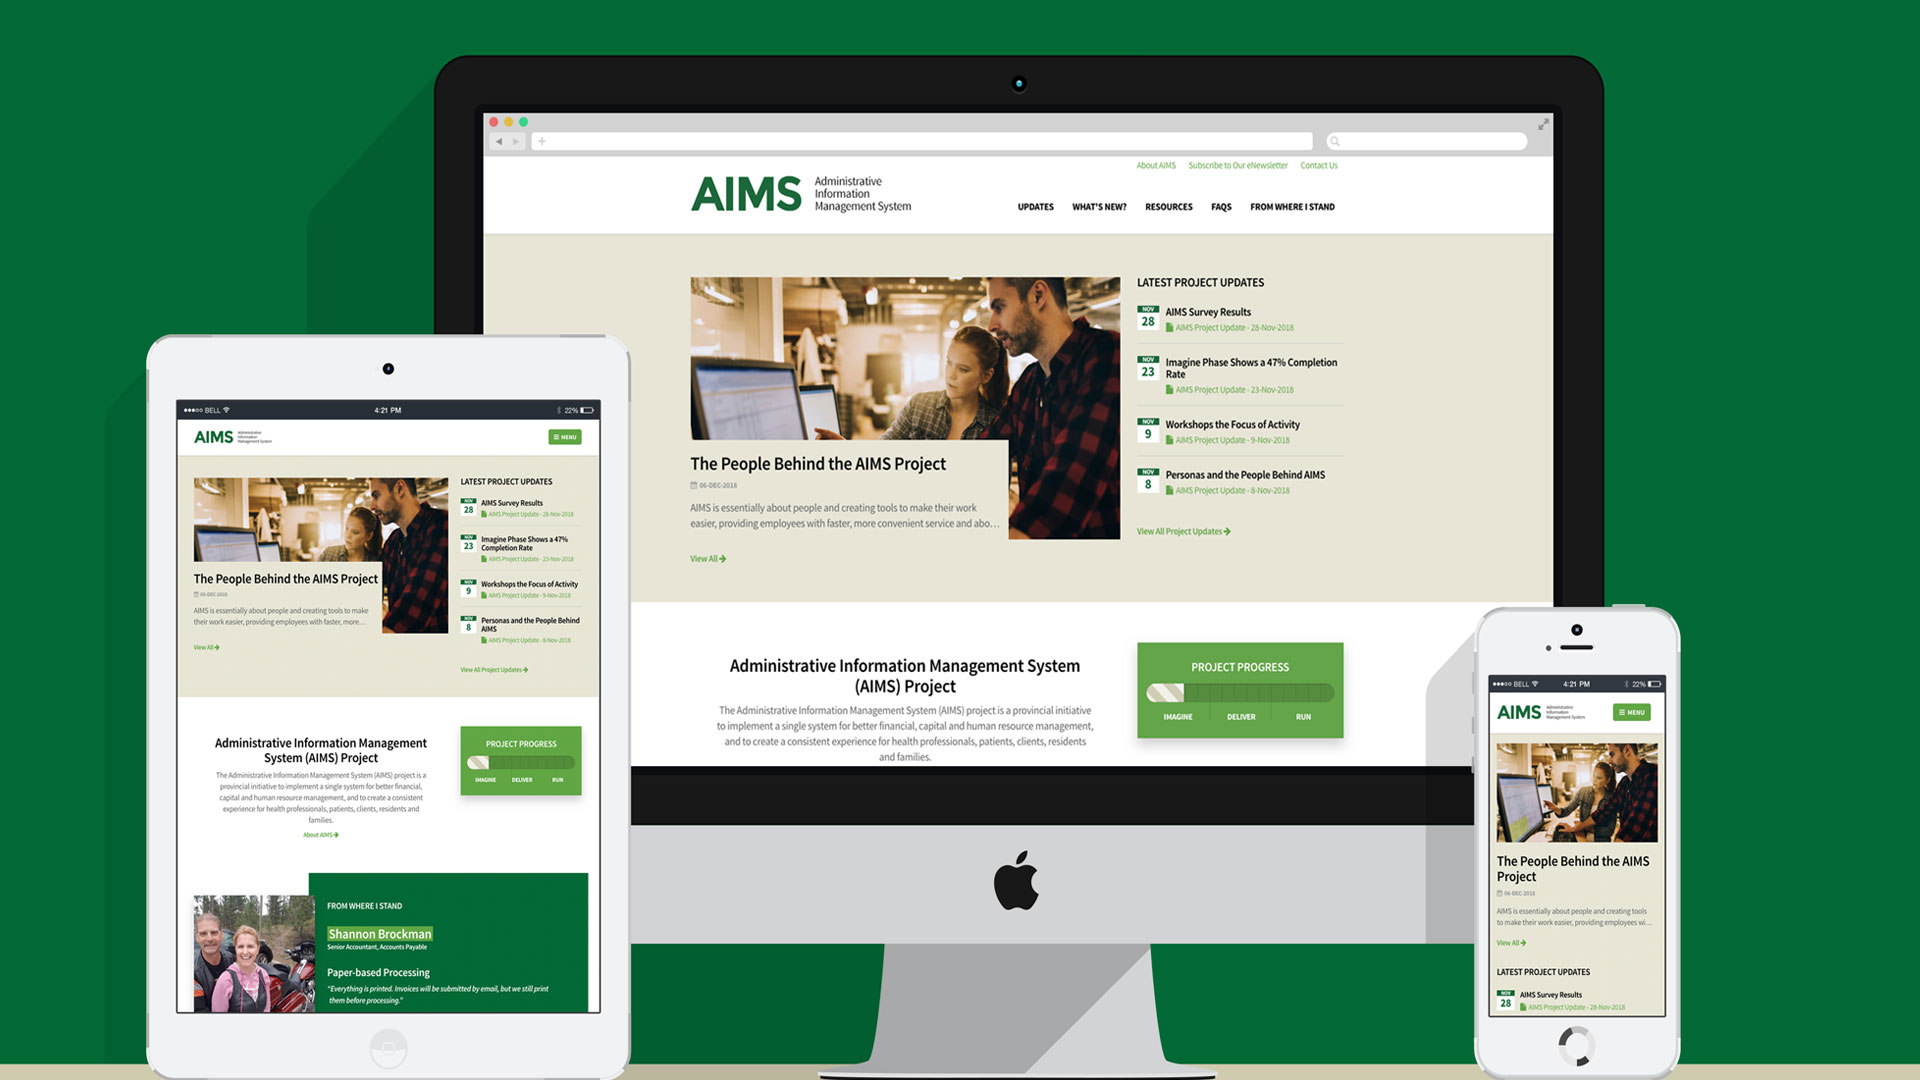 AIMS Project Launches New Website